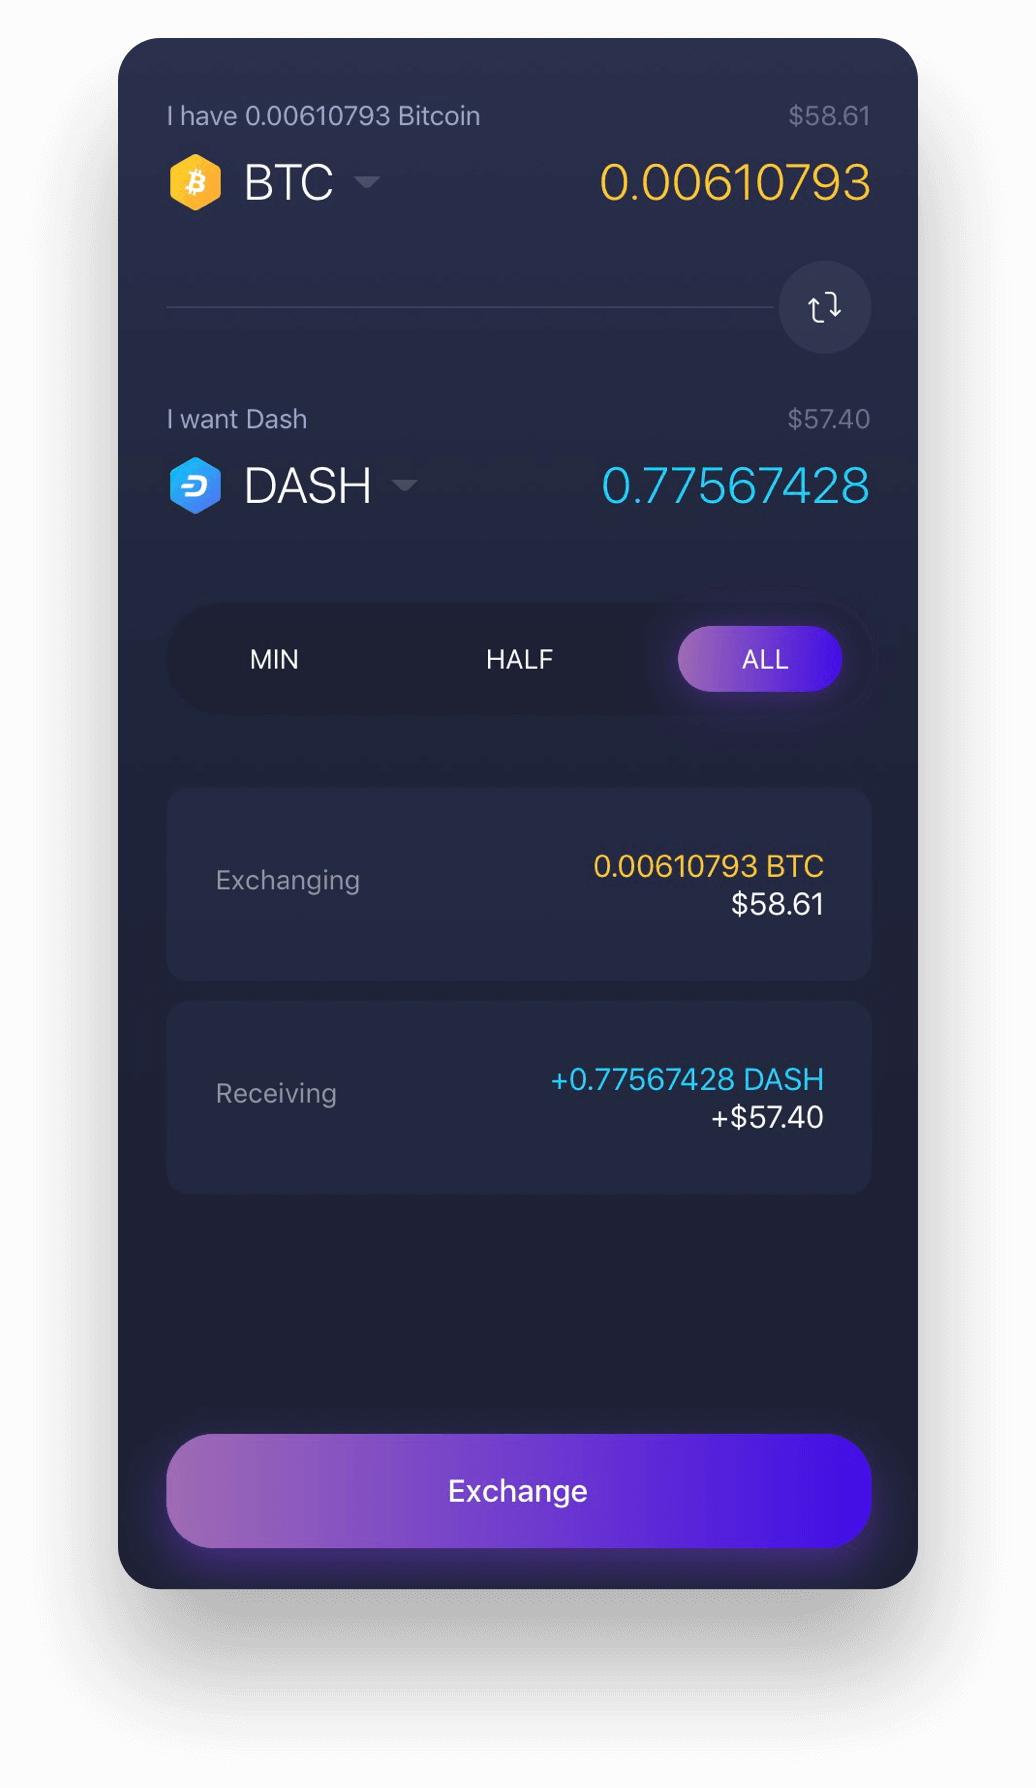 Experience Dash on Exodus Dash mobile wallet (Dash Android wallet and iOS wallet supported)